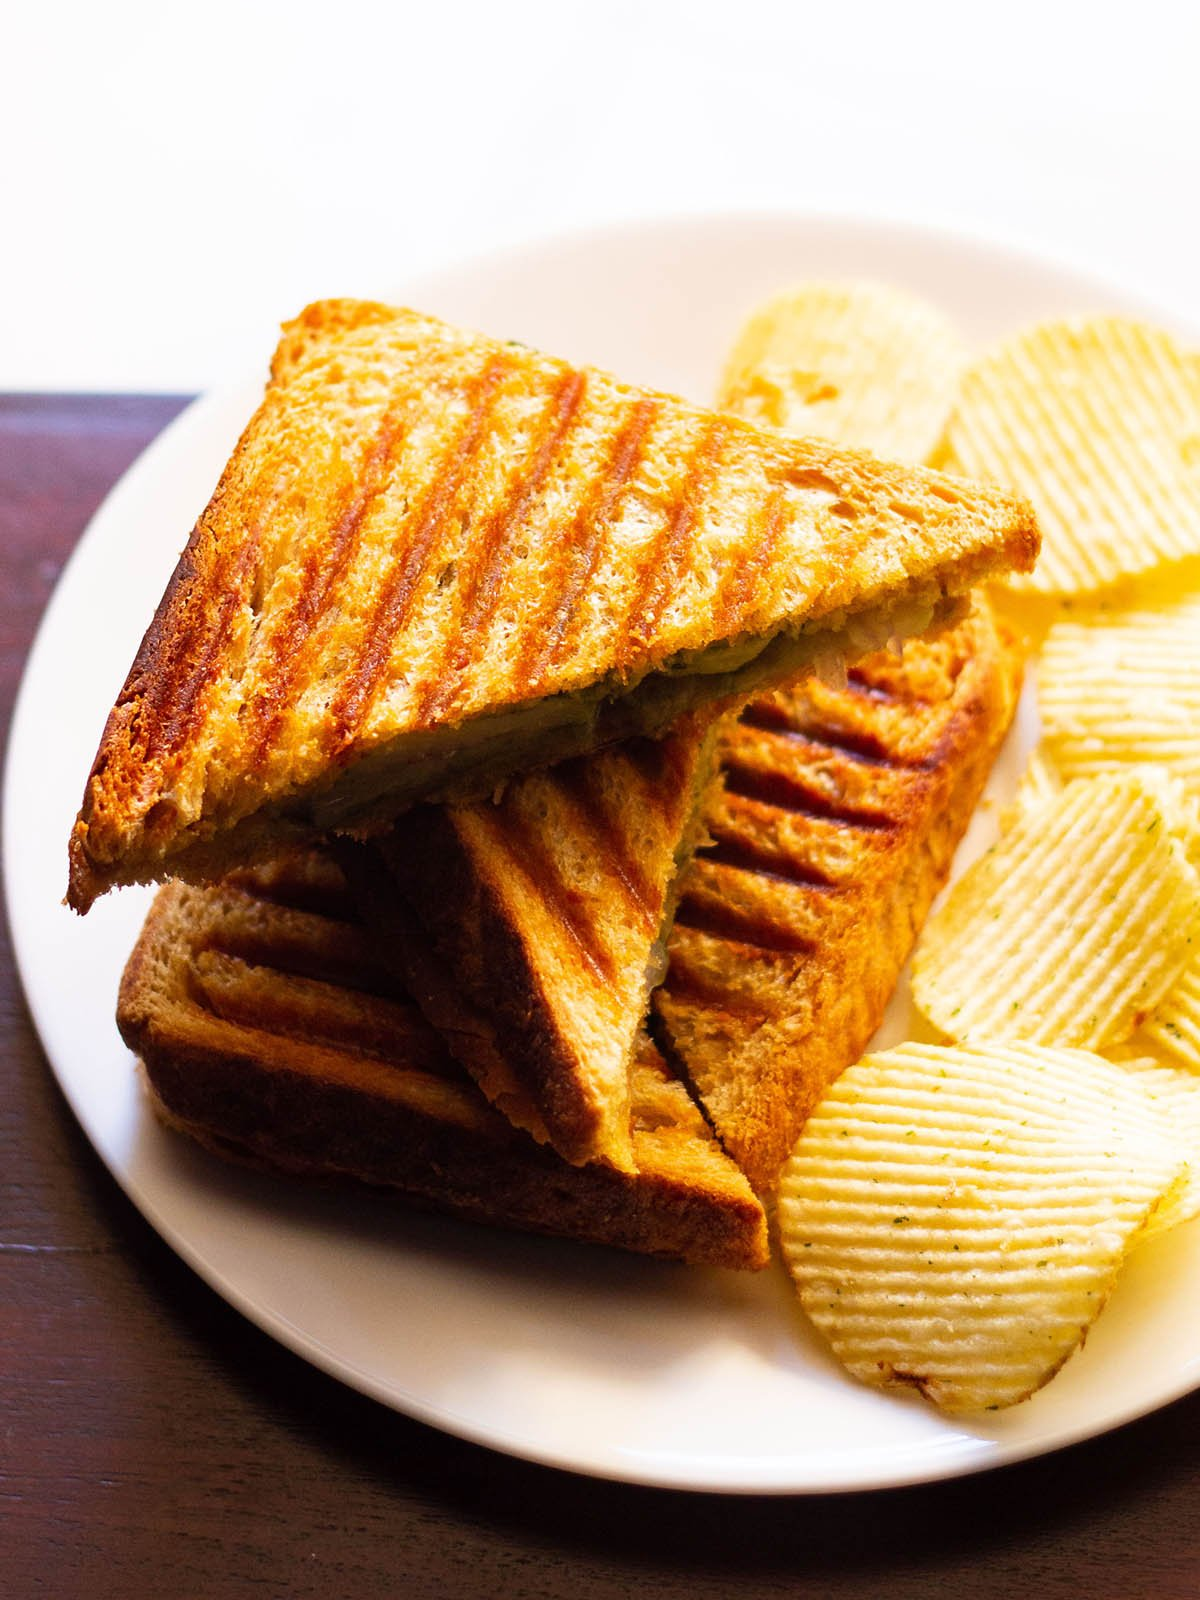 golden, crisp grilled sandwiches with a side of potato wafers on a white plate